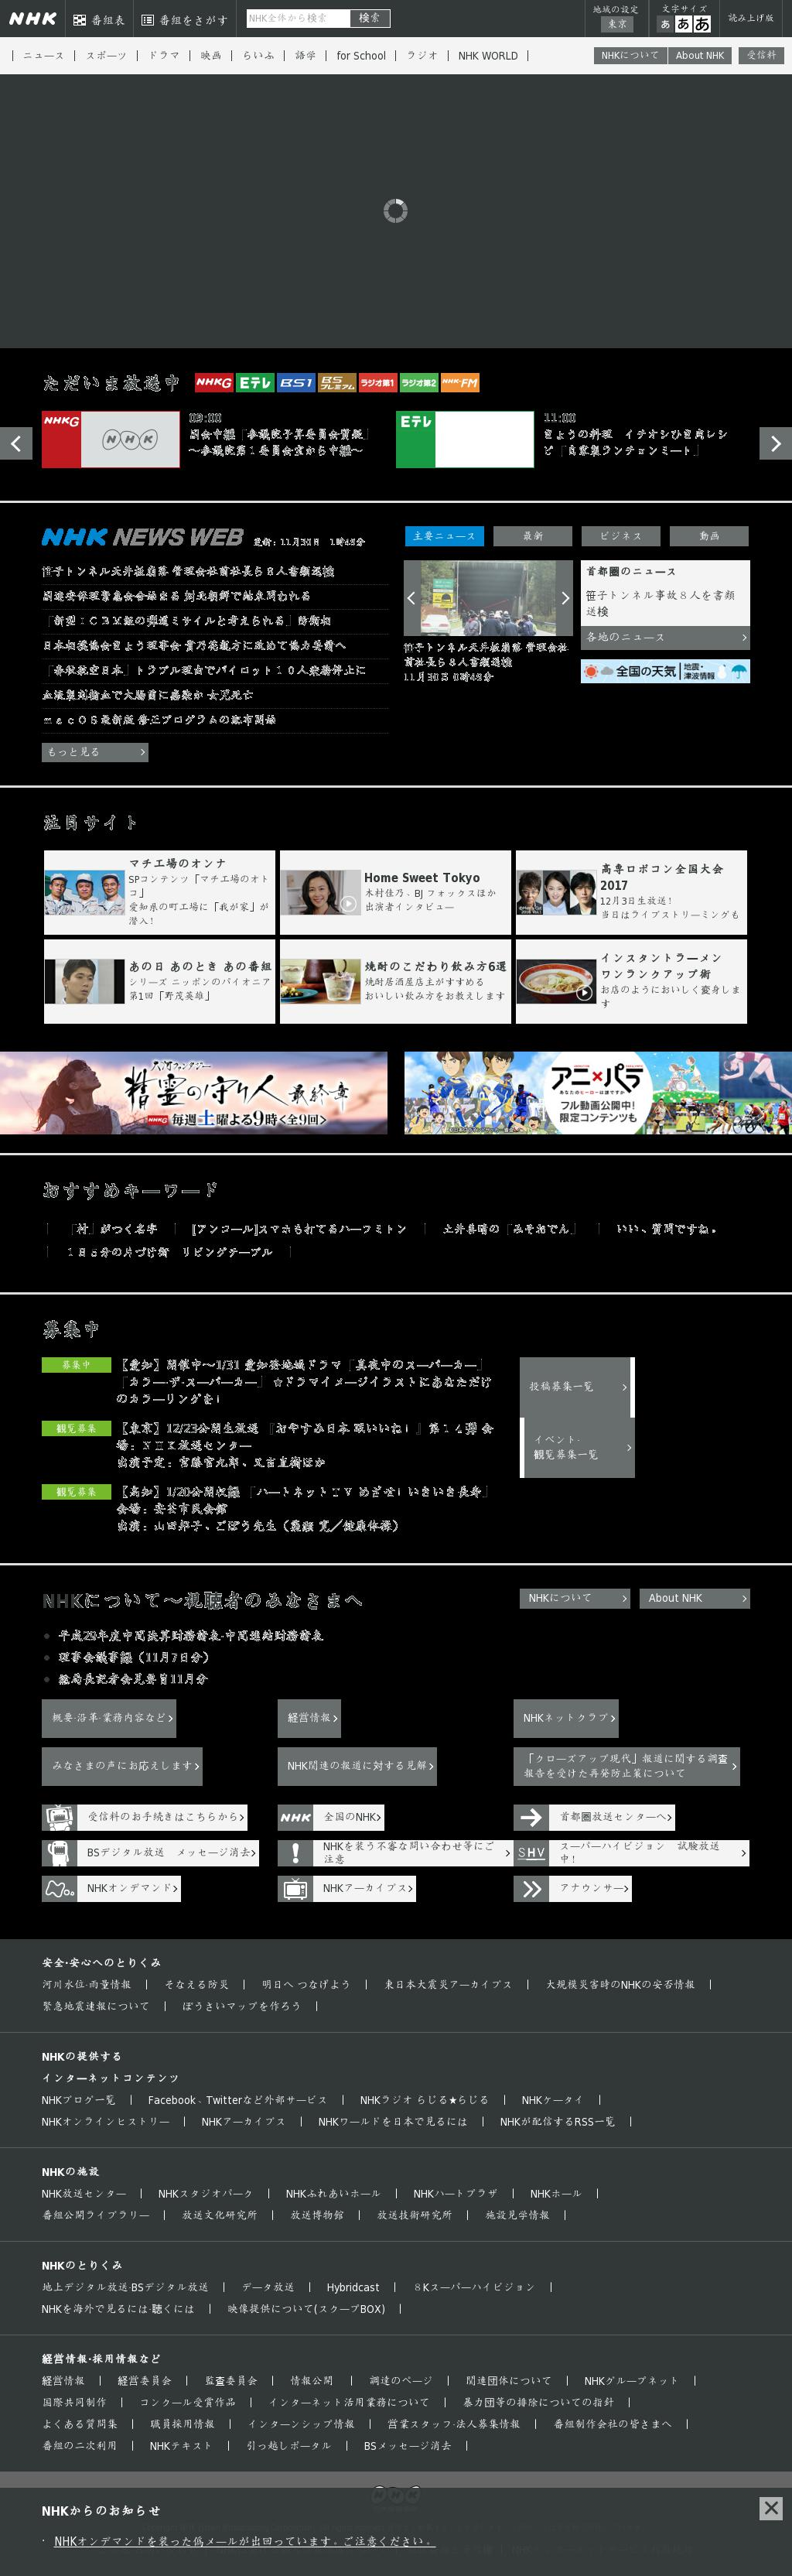 NHK Online at Friday March 23, 2018, 5:06 a.m. UTC